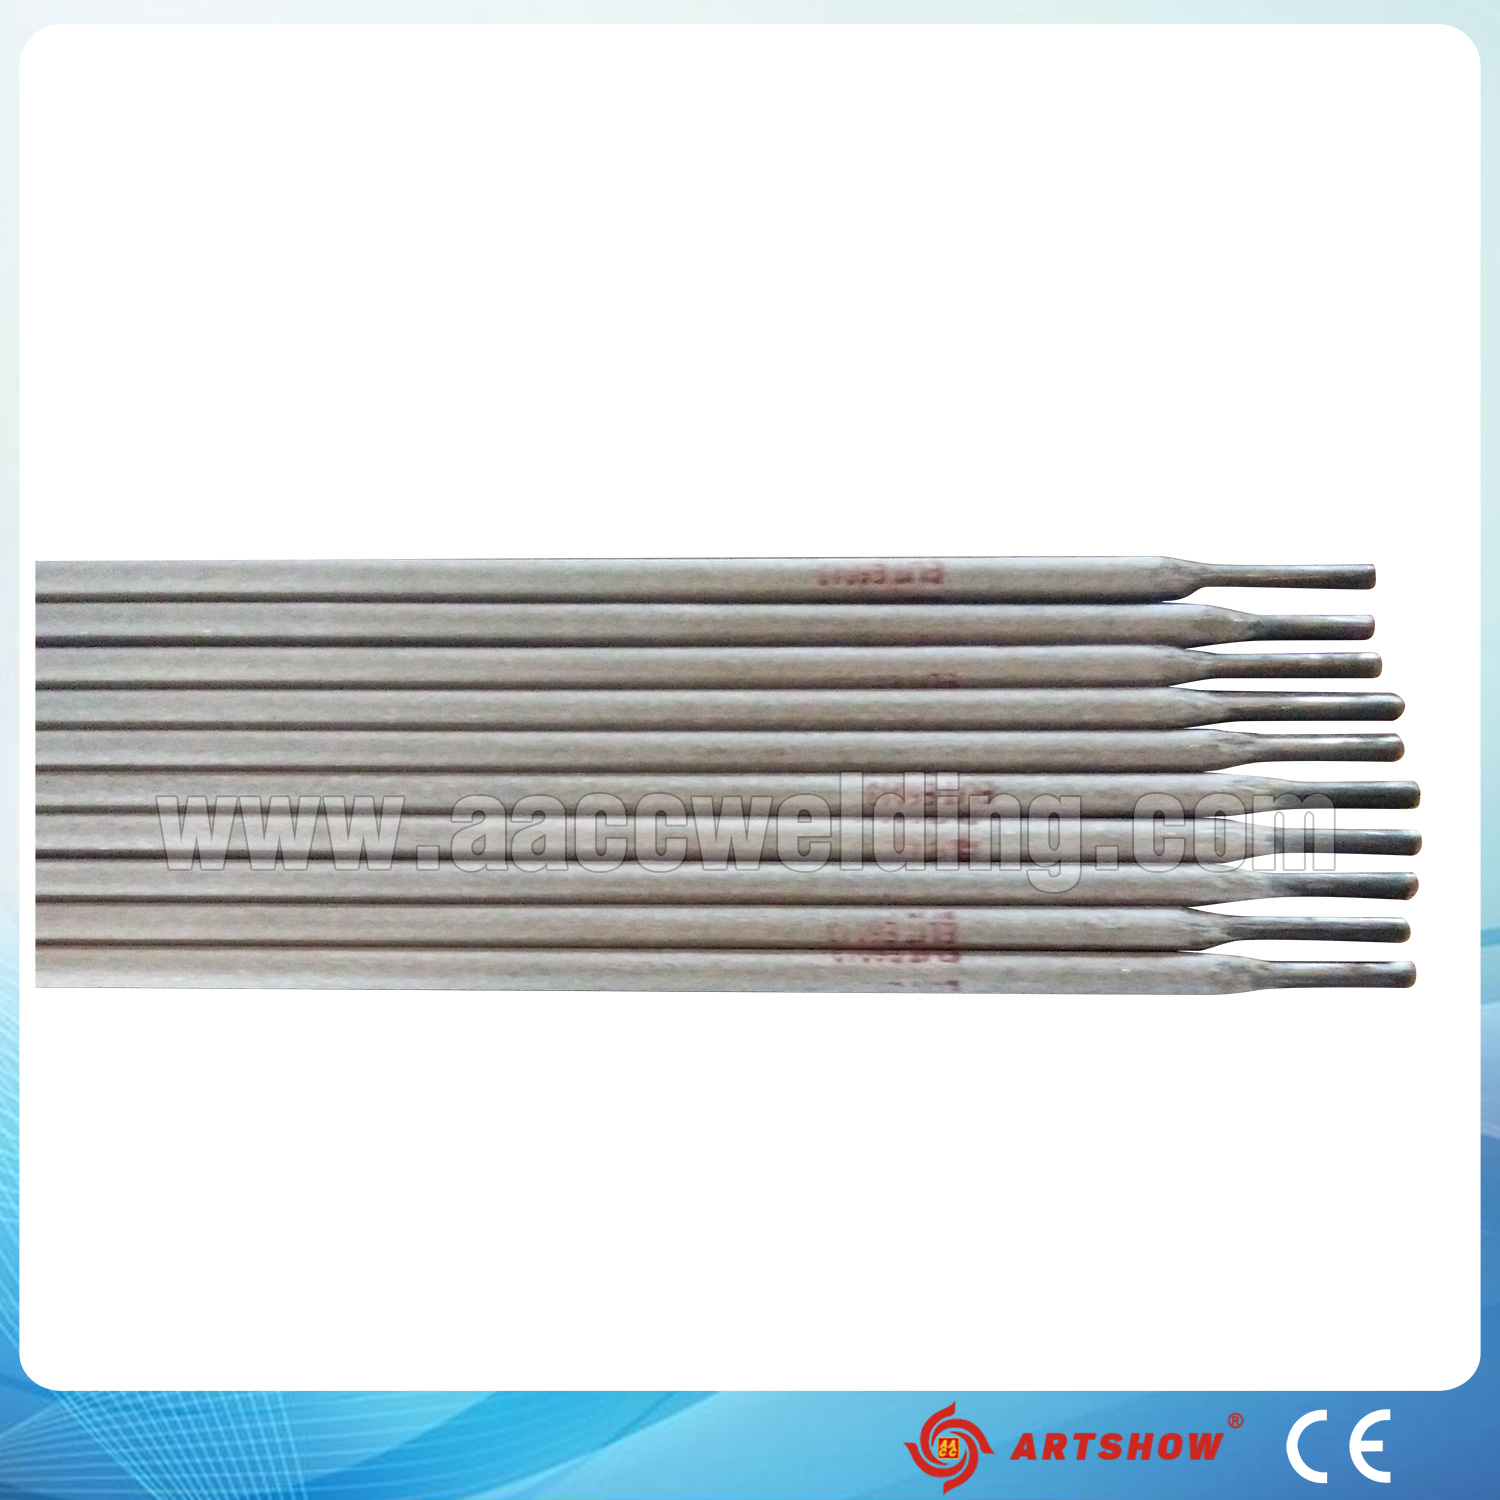 Welding Wire and Welding Electrode E6013,E7018